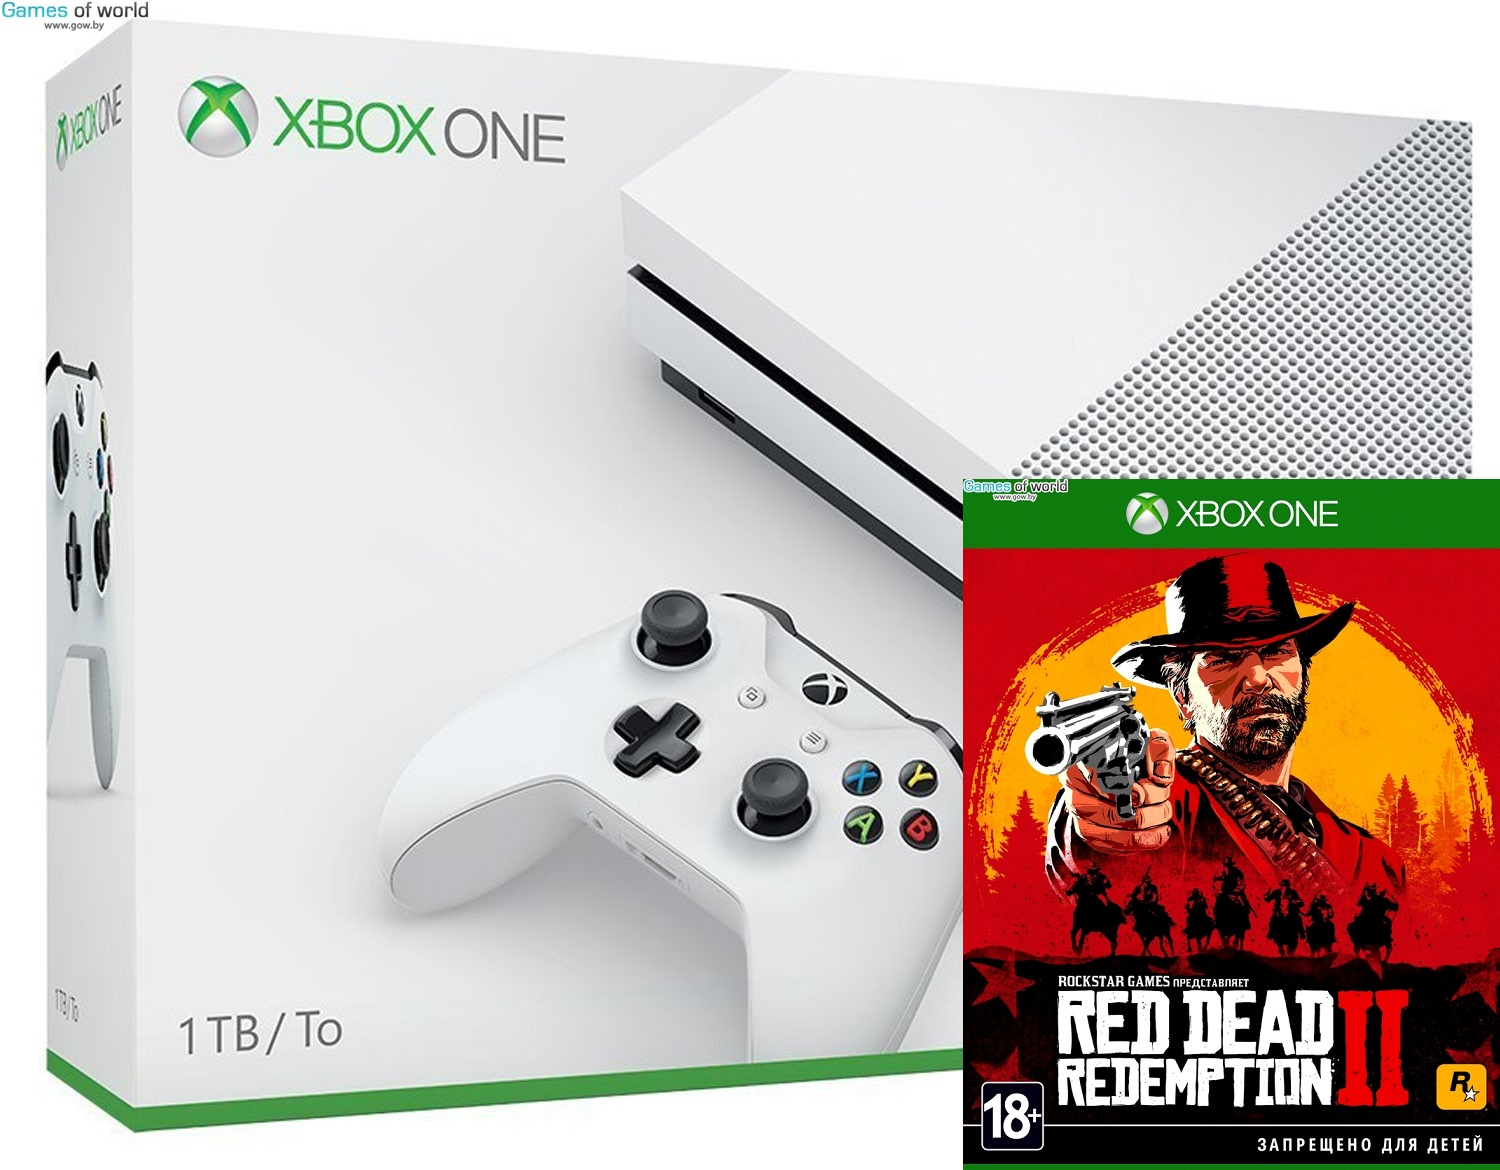 Xbox One S 1TB + RED DEAD REDEMPTION 2 от магазина Games of World